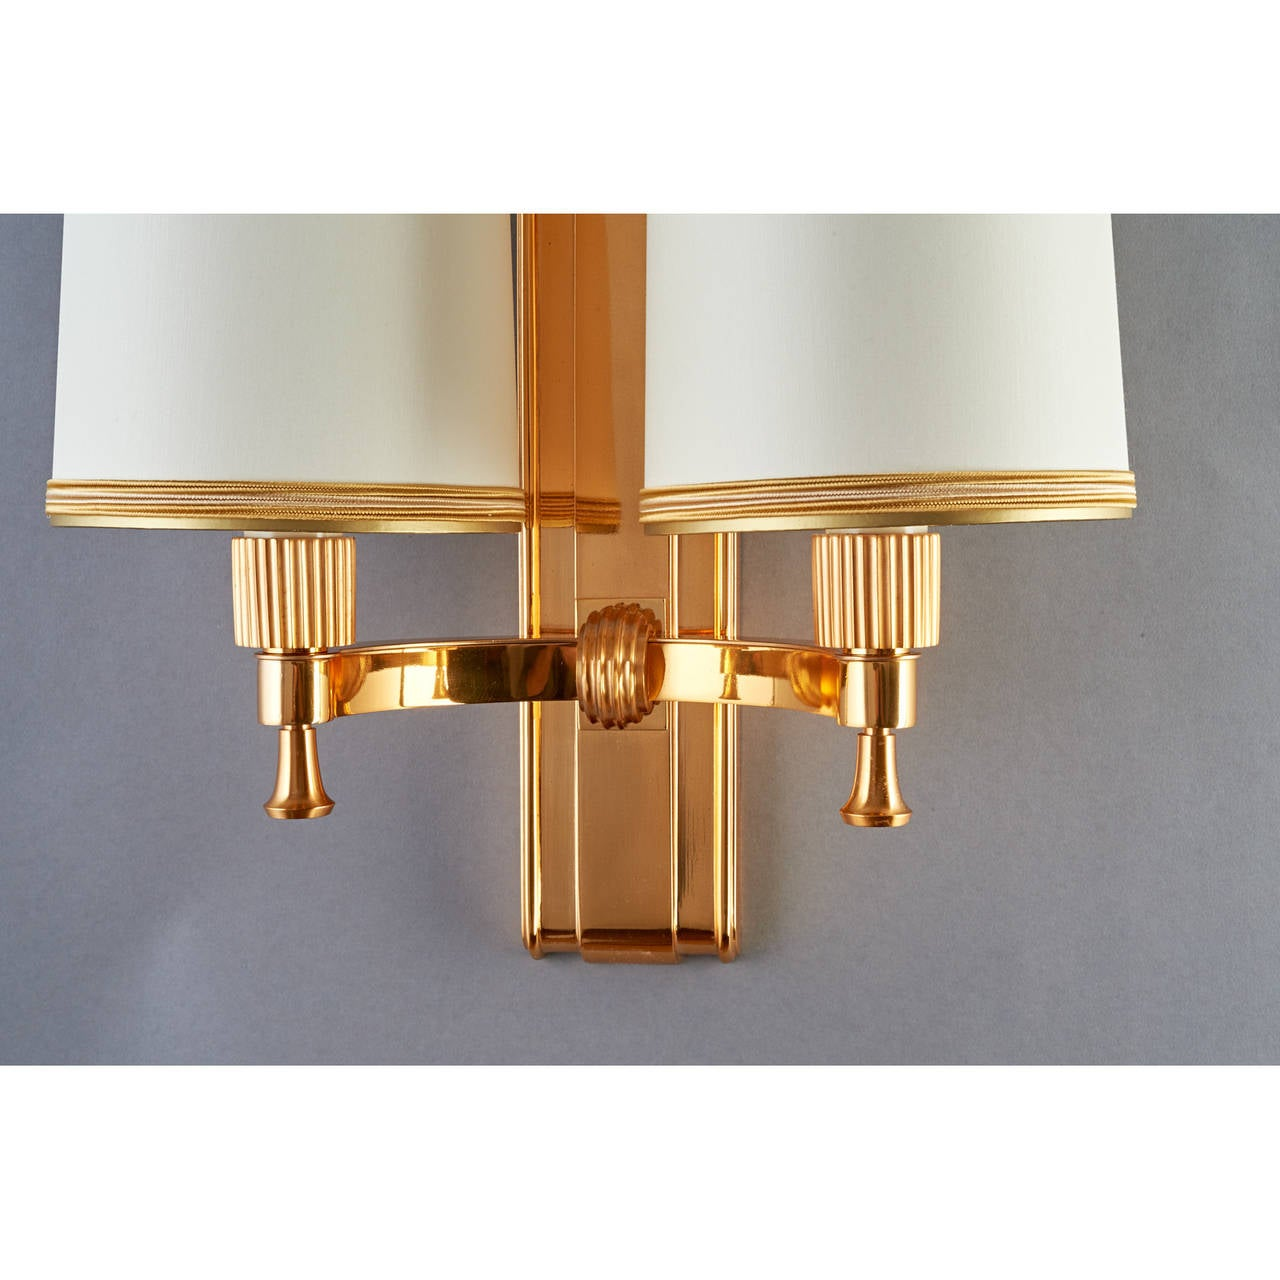 Elegant 1940's Bronze Sconces by Maxime Old 4